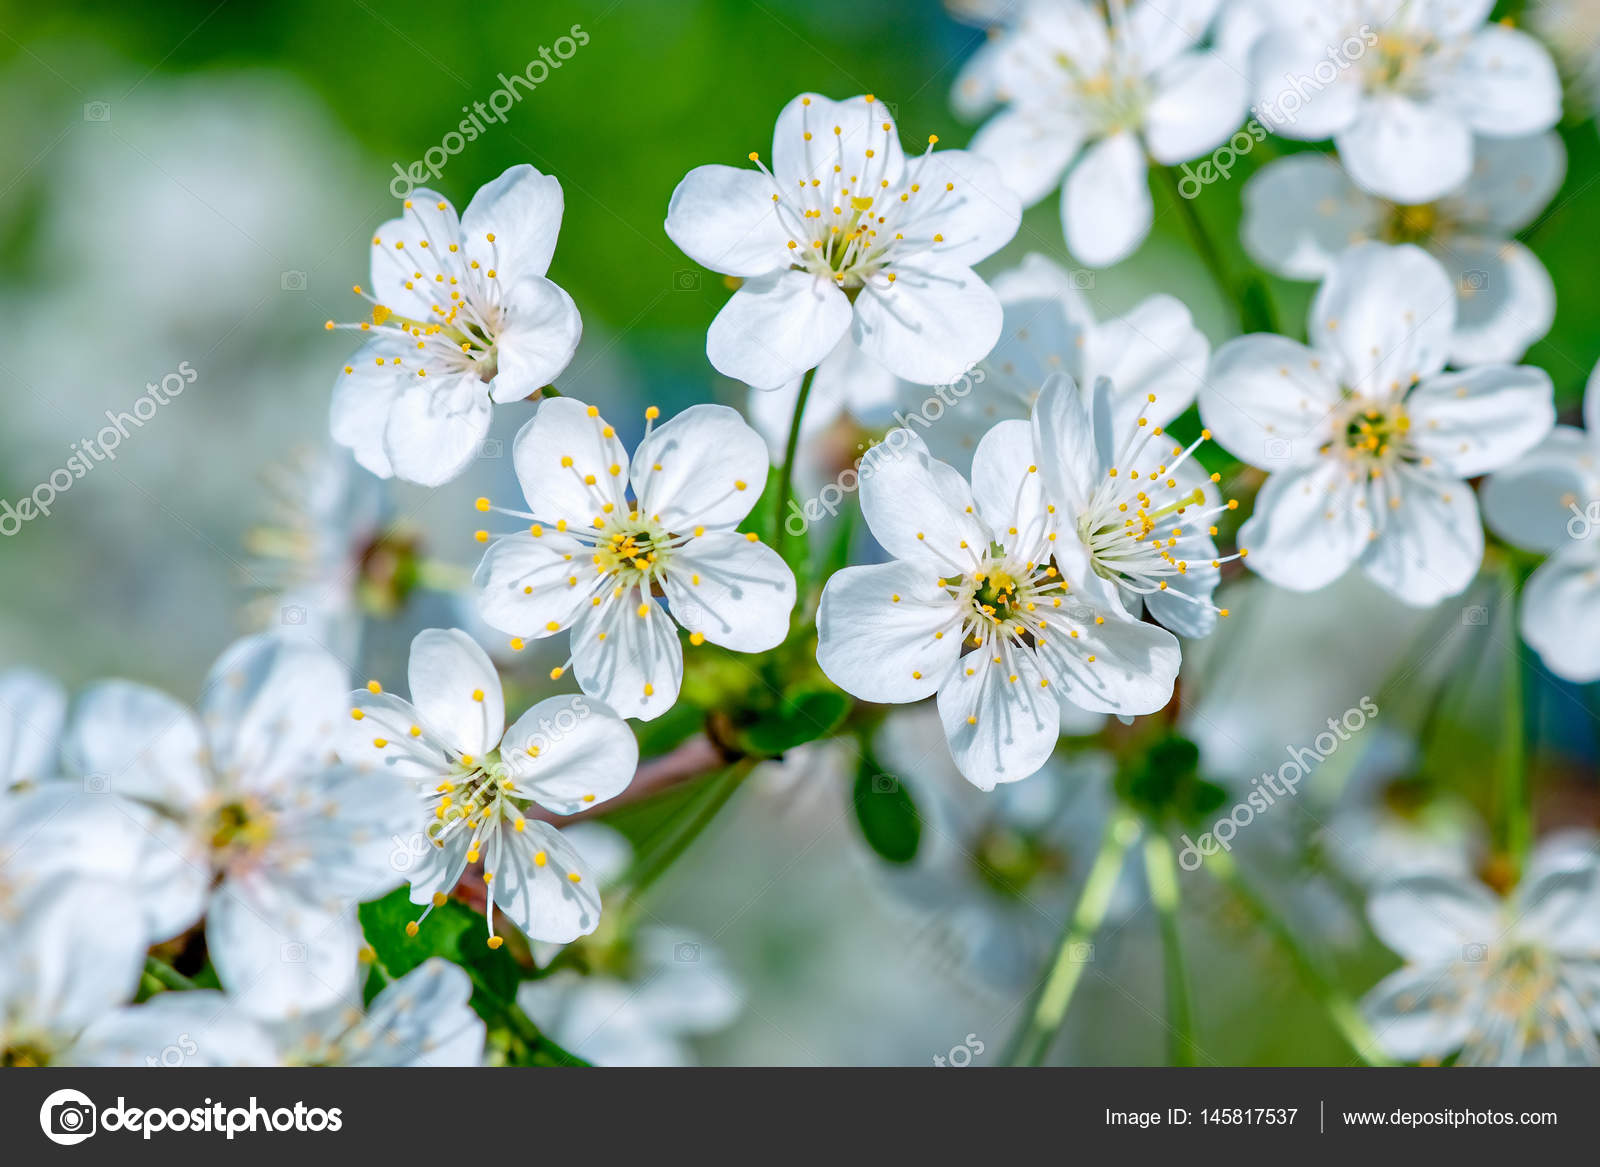 White cherry tree flowers stock photo desertsun 145817537 white flowers of a cherry tree in full bloom and blossom closeup view joy and beauty of spring season photo by desertsun mightylinksfo